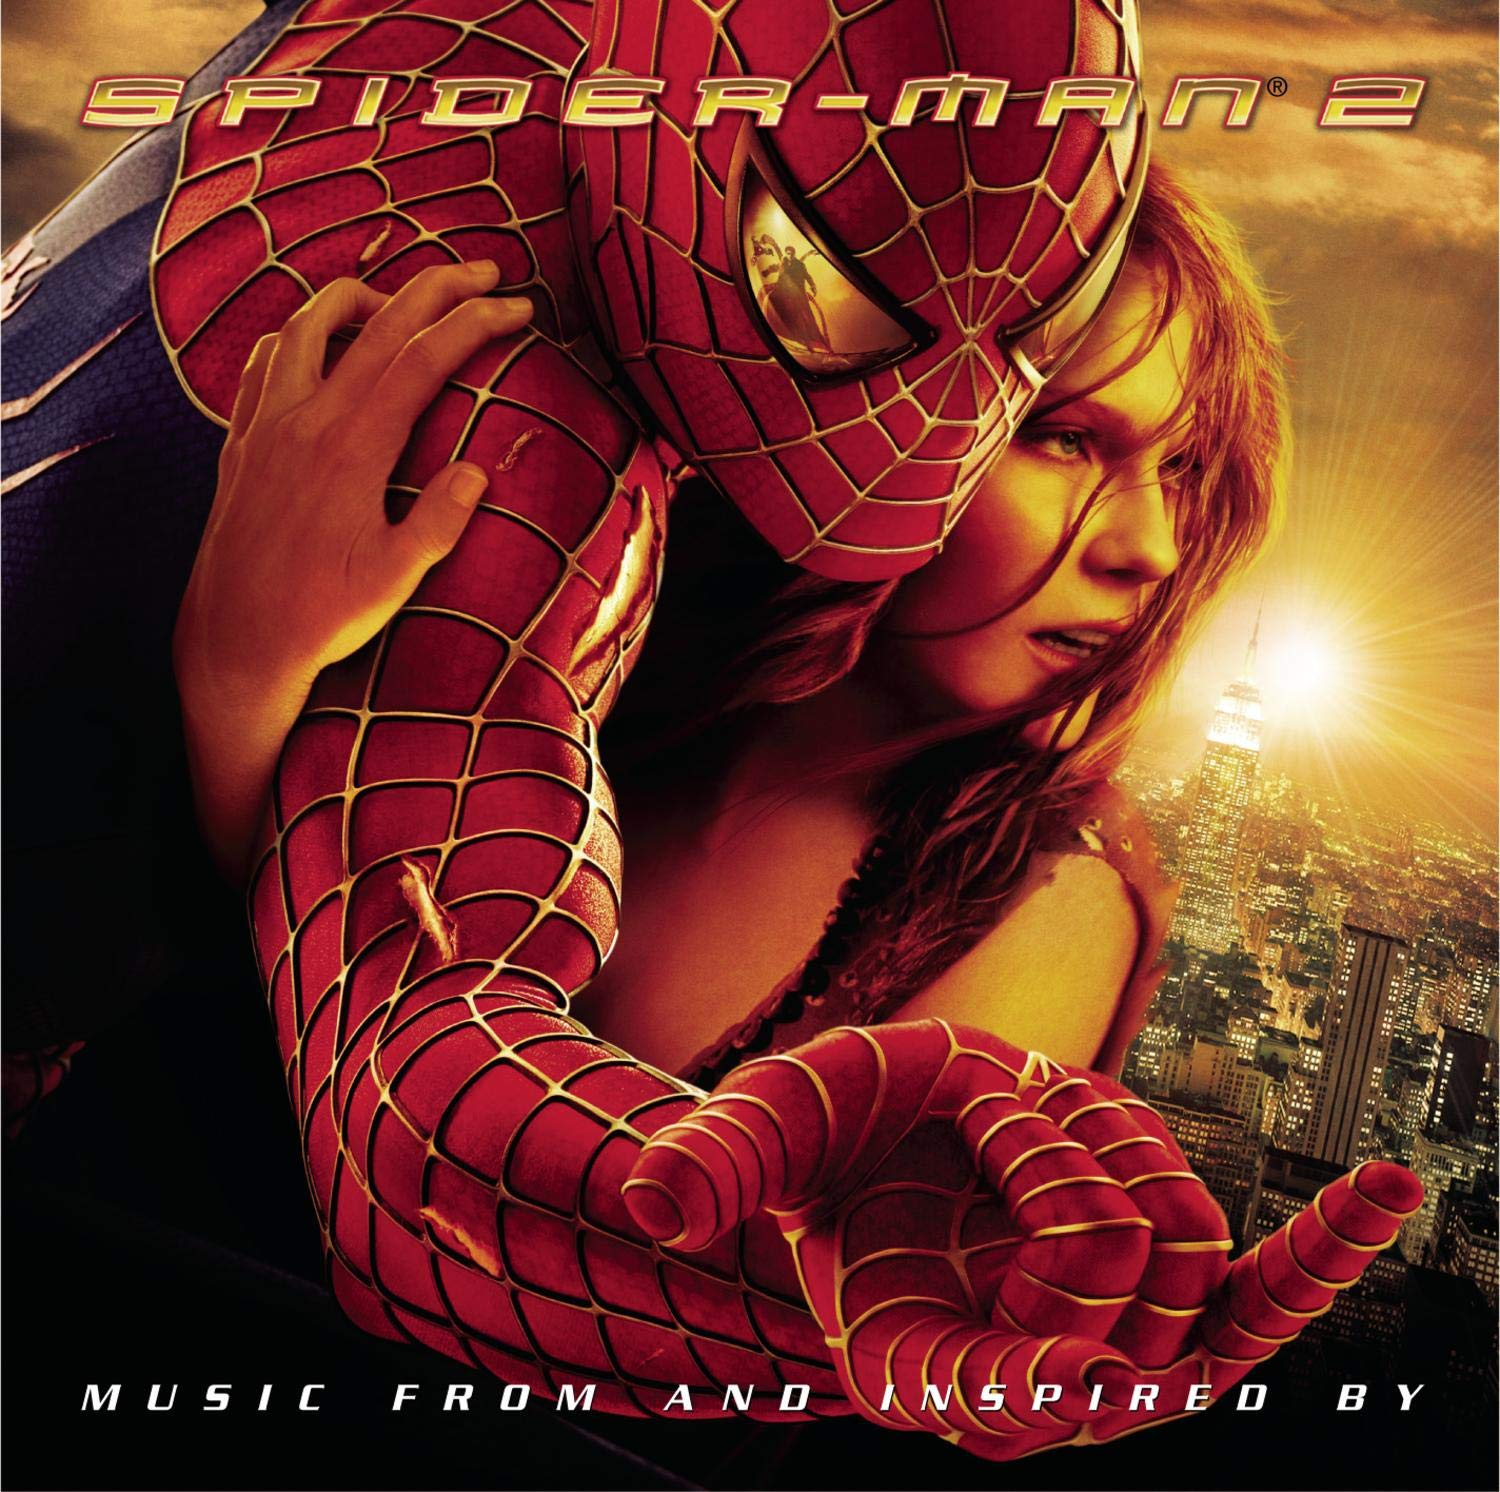 VA – Spider-Man 2 Music From And Inspired By (2004) [FLAC]